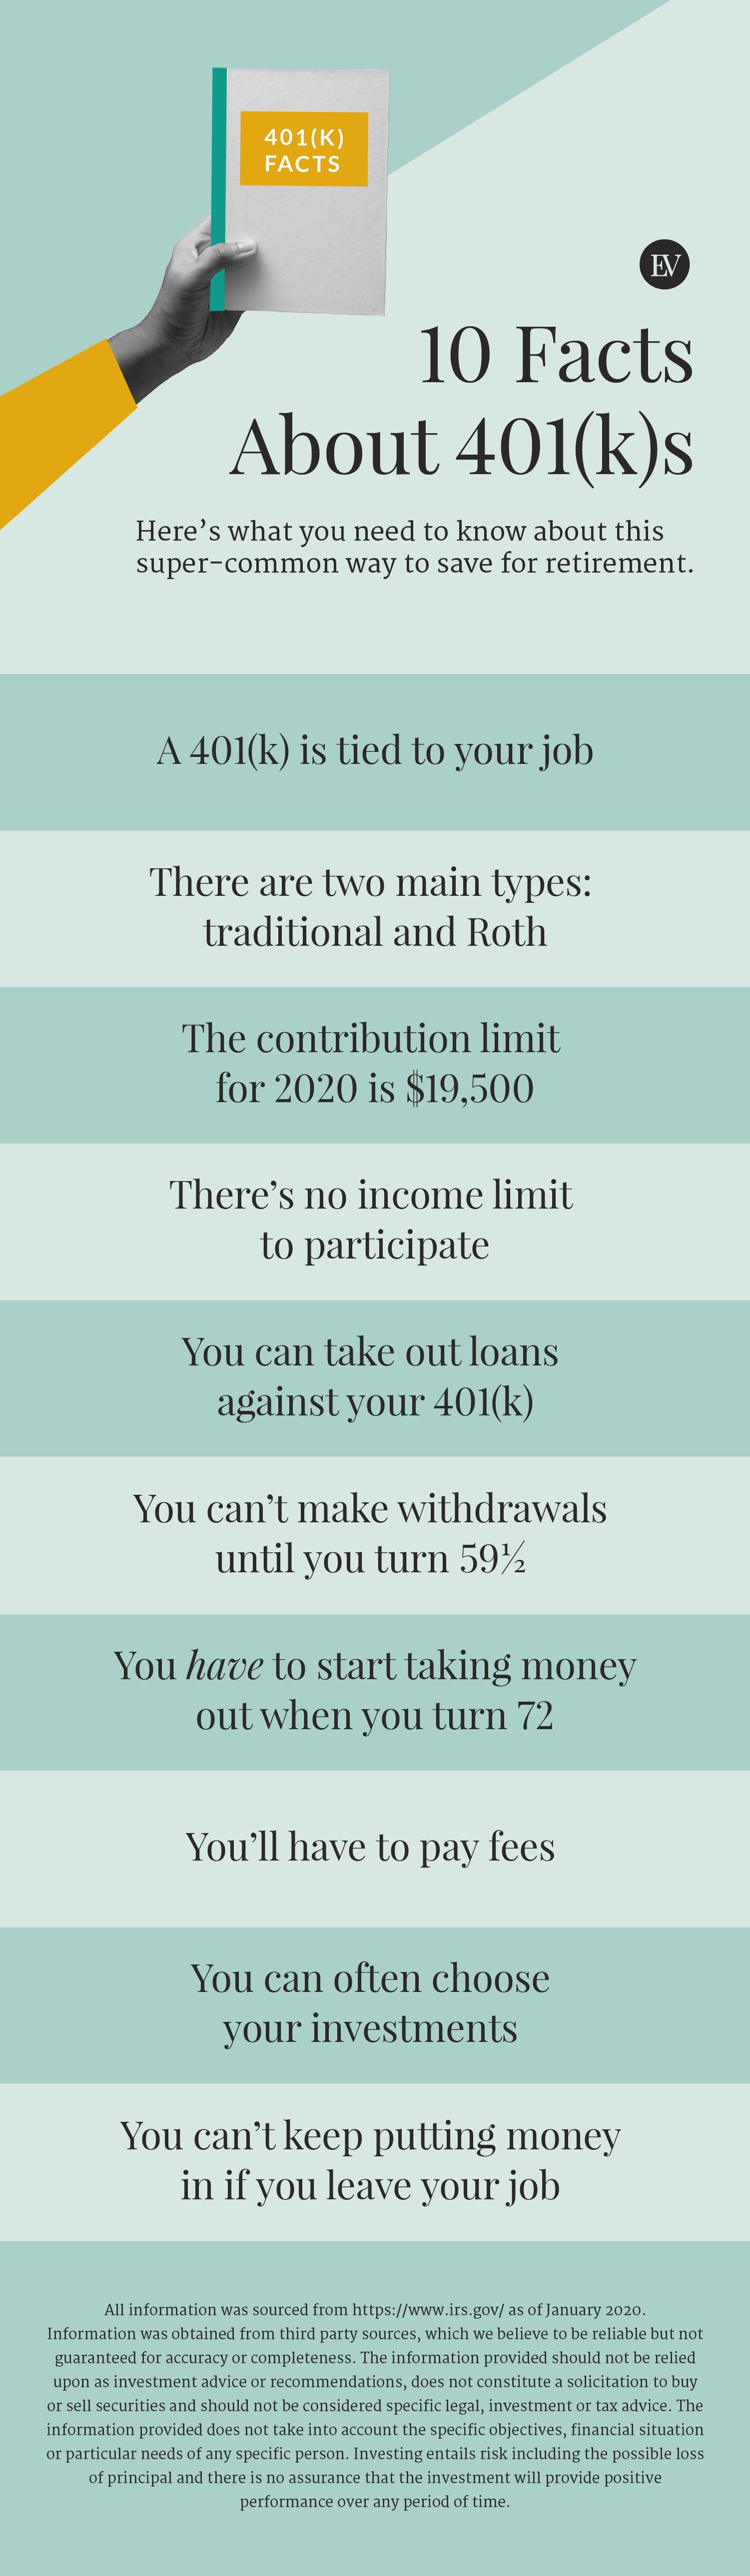 10 Facts About 401(k)s